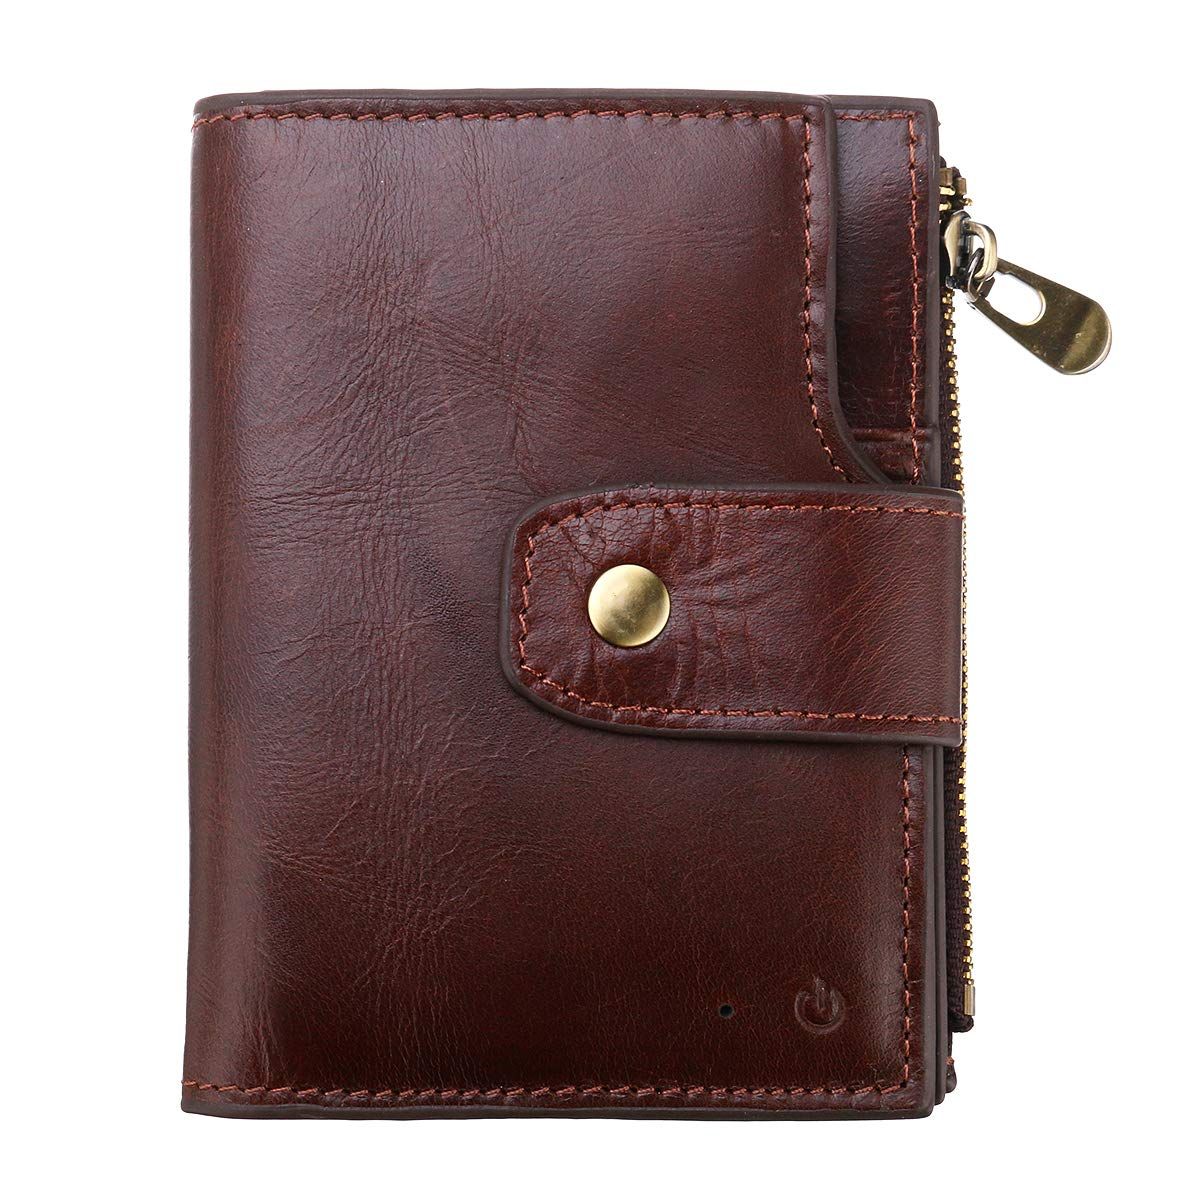 ILS - Genuine Leather Bluetooth Smart Wallet Anti Lost Locator Finder GPS Tracker Device Men Purse by ILS I LOVE SHOPPING